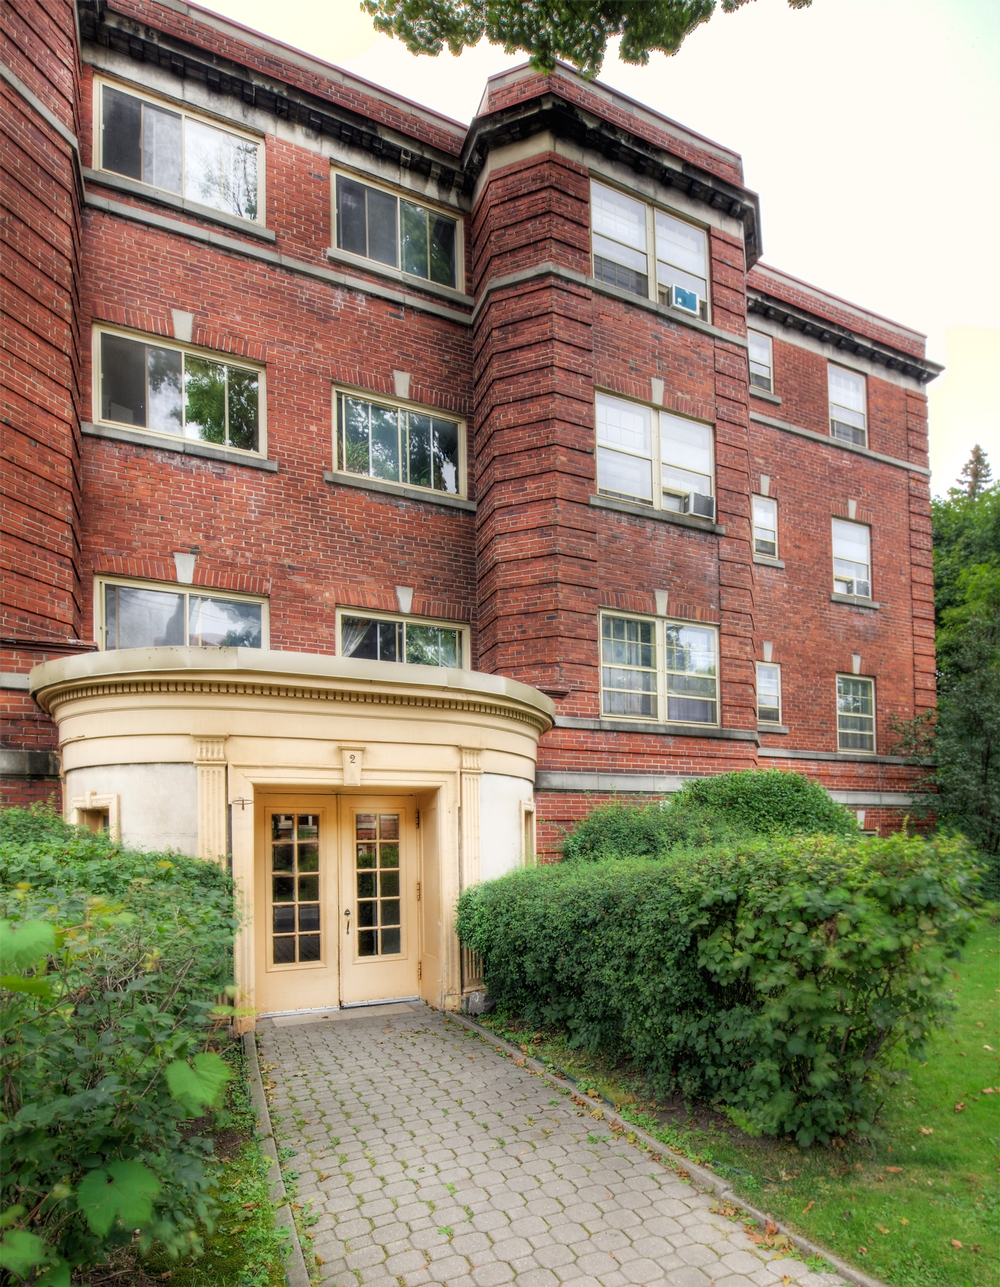 Hampstead 1 bedroom apartments for rent at 1 2 ellerdale - 1 or 2 bedroom apartments for rent ...